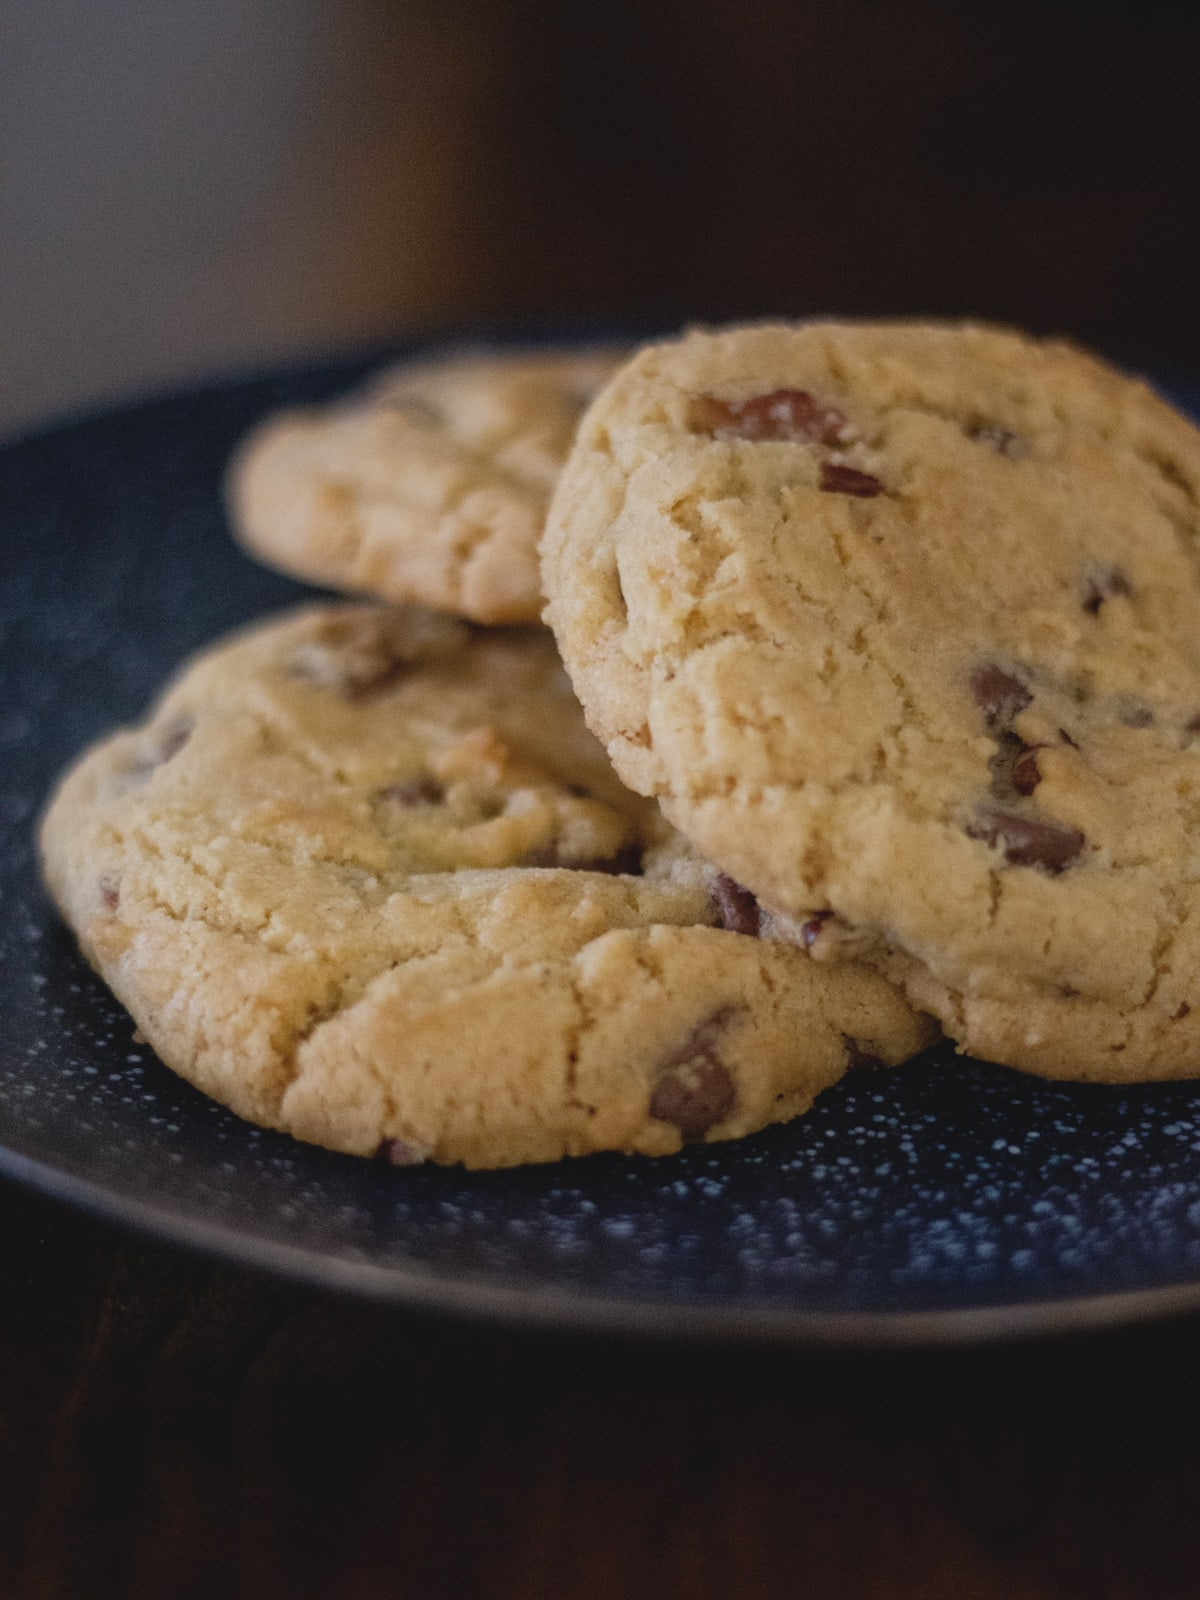 Jumbo Crisp Chocolate Chip Cookies - Hand-sized cookies that are buttery, crunchy and perfect for dipping in milk!